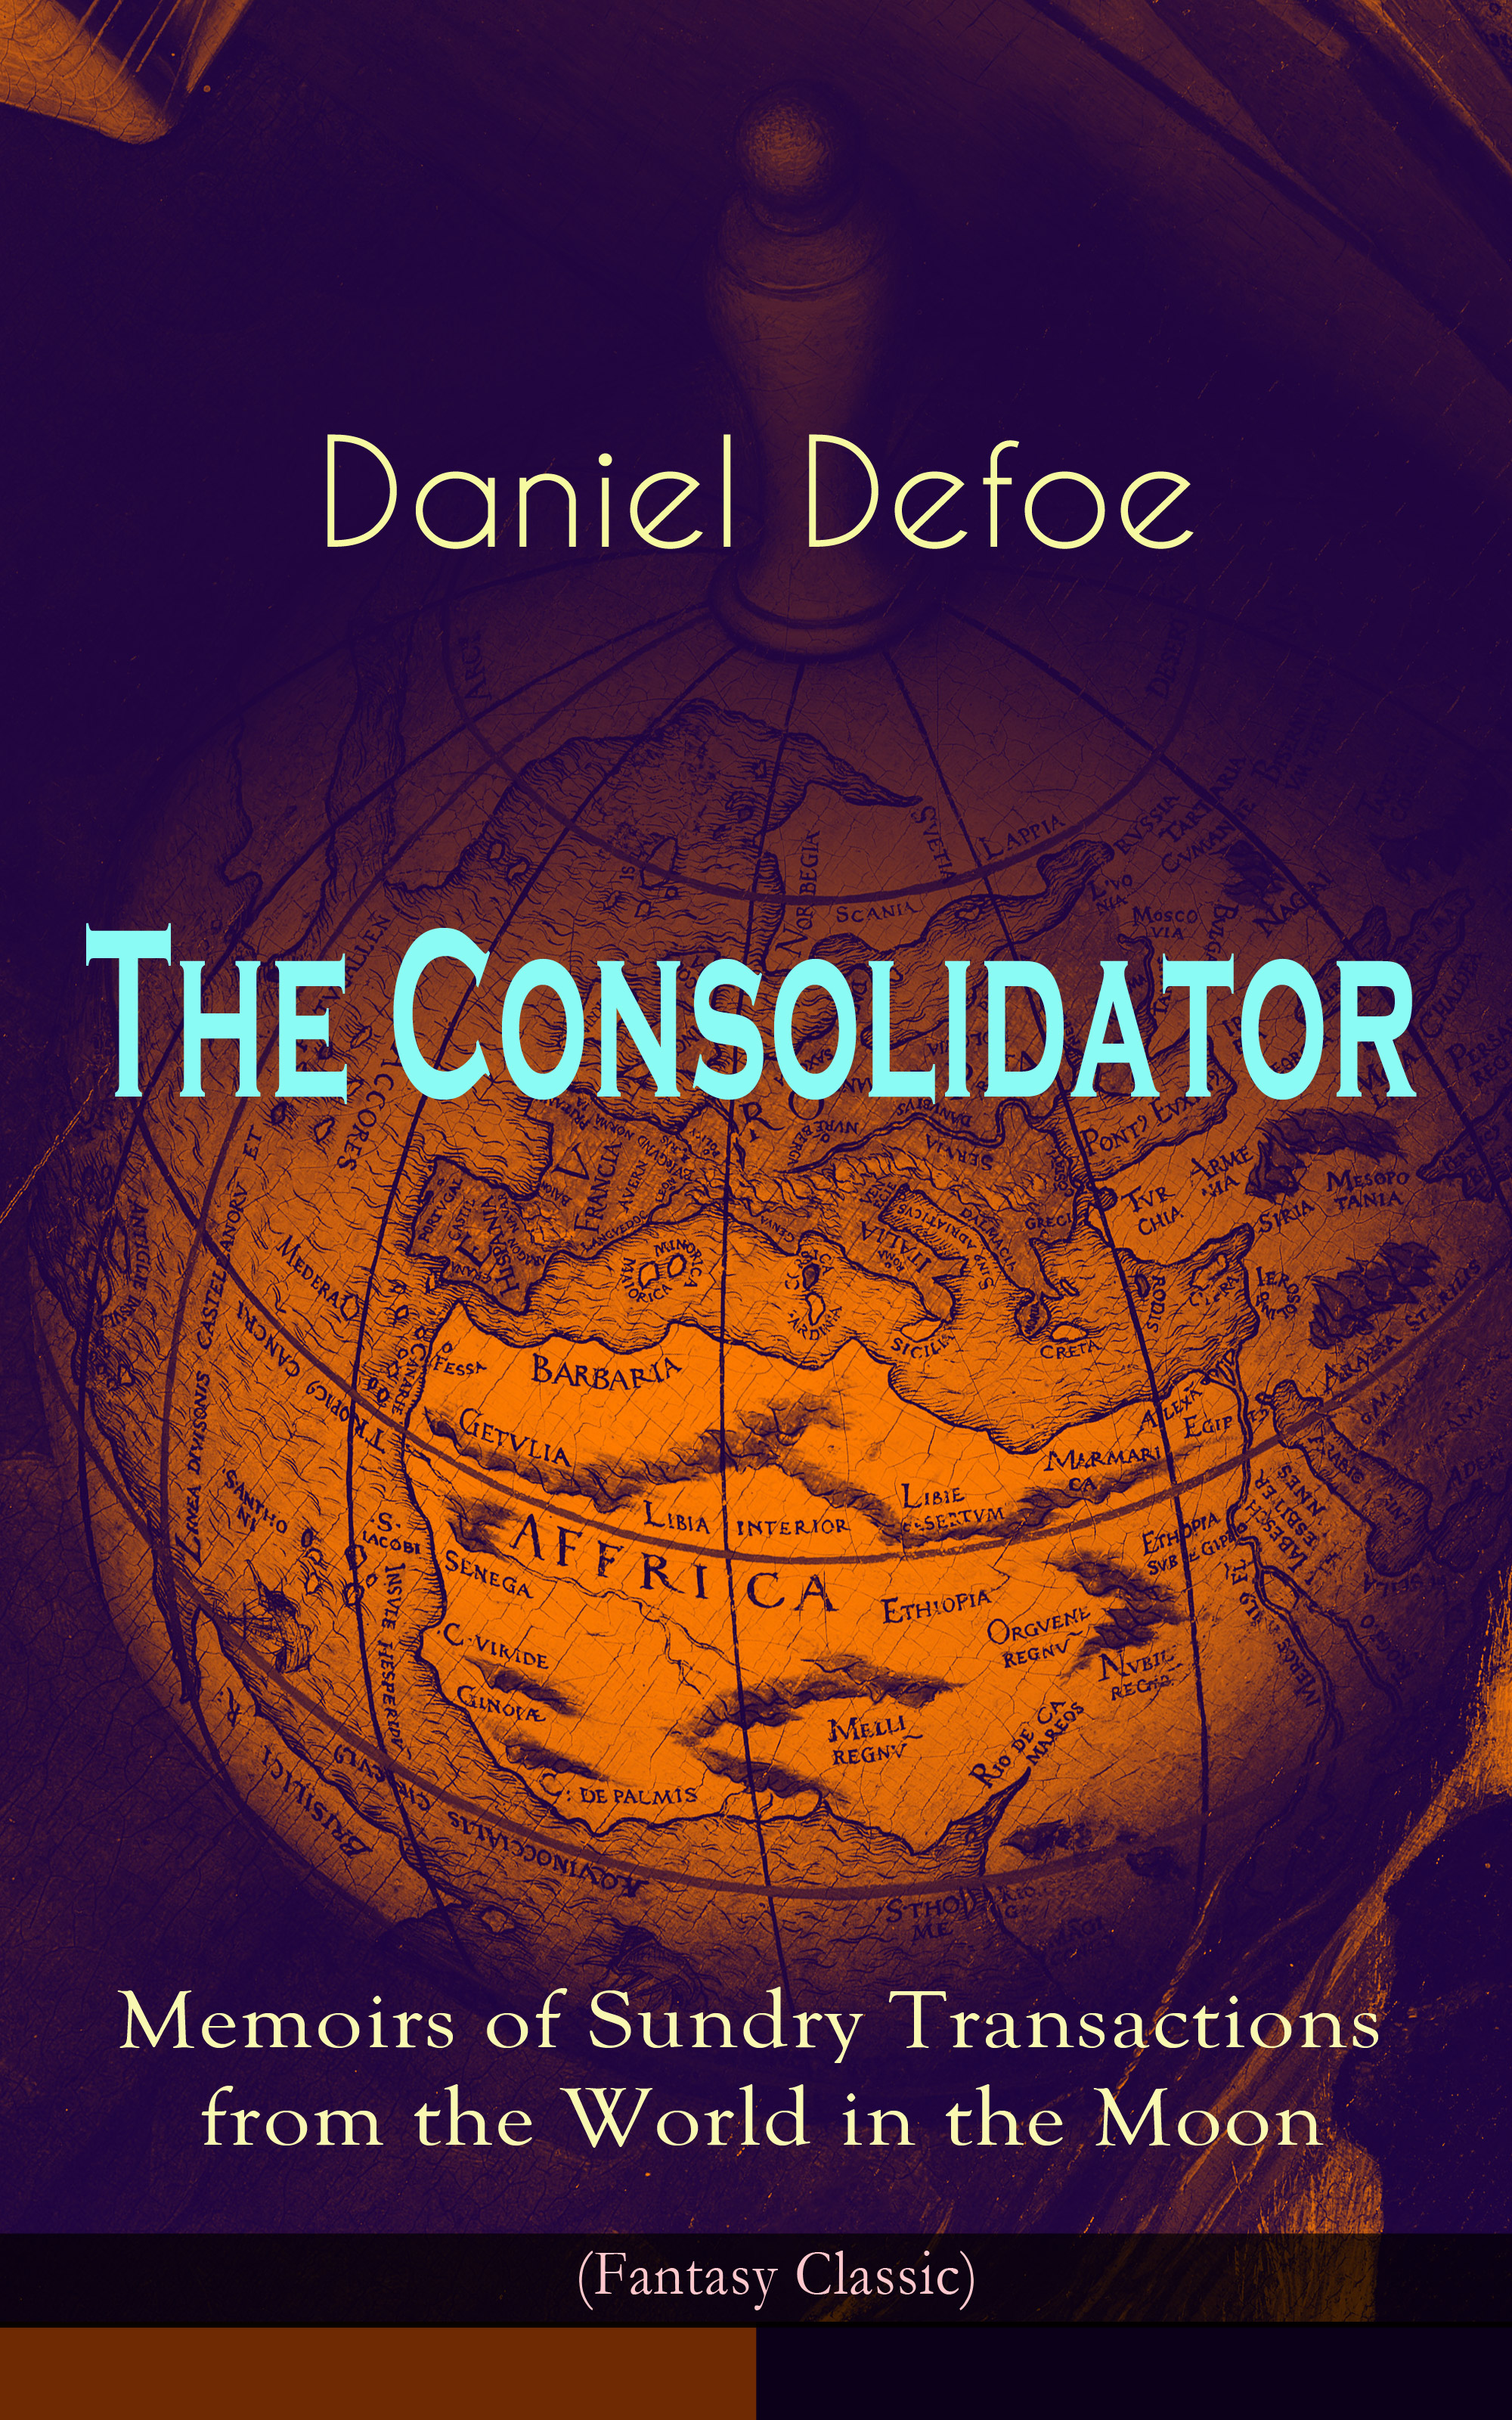 Daniel Defoe The Consolidator - Memoirs of Sundry Transactions from the World in the Moon (Fantasy Classic)